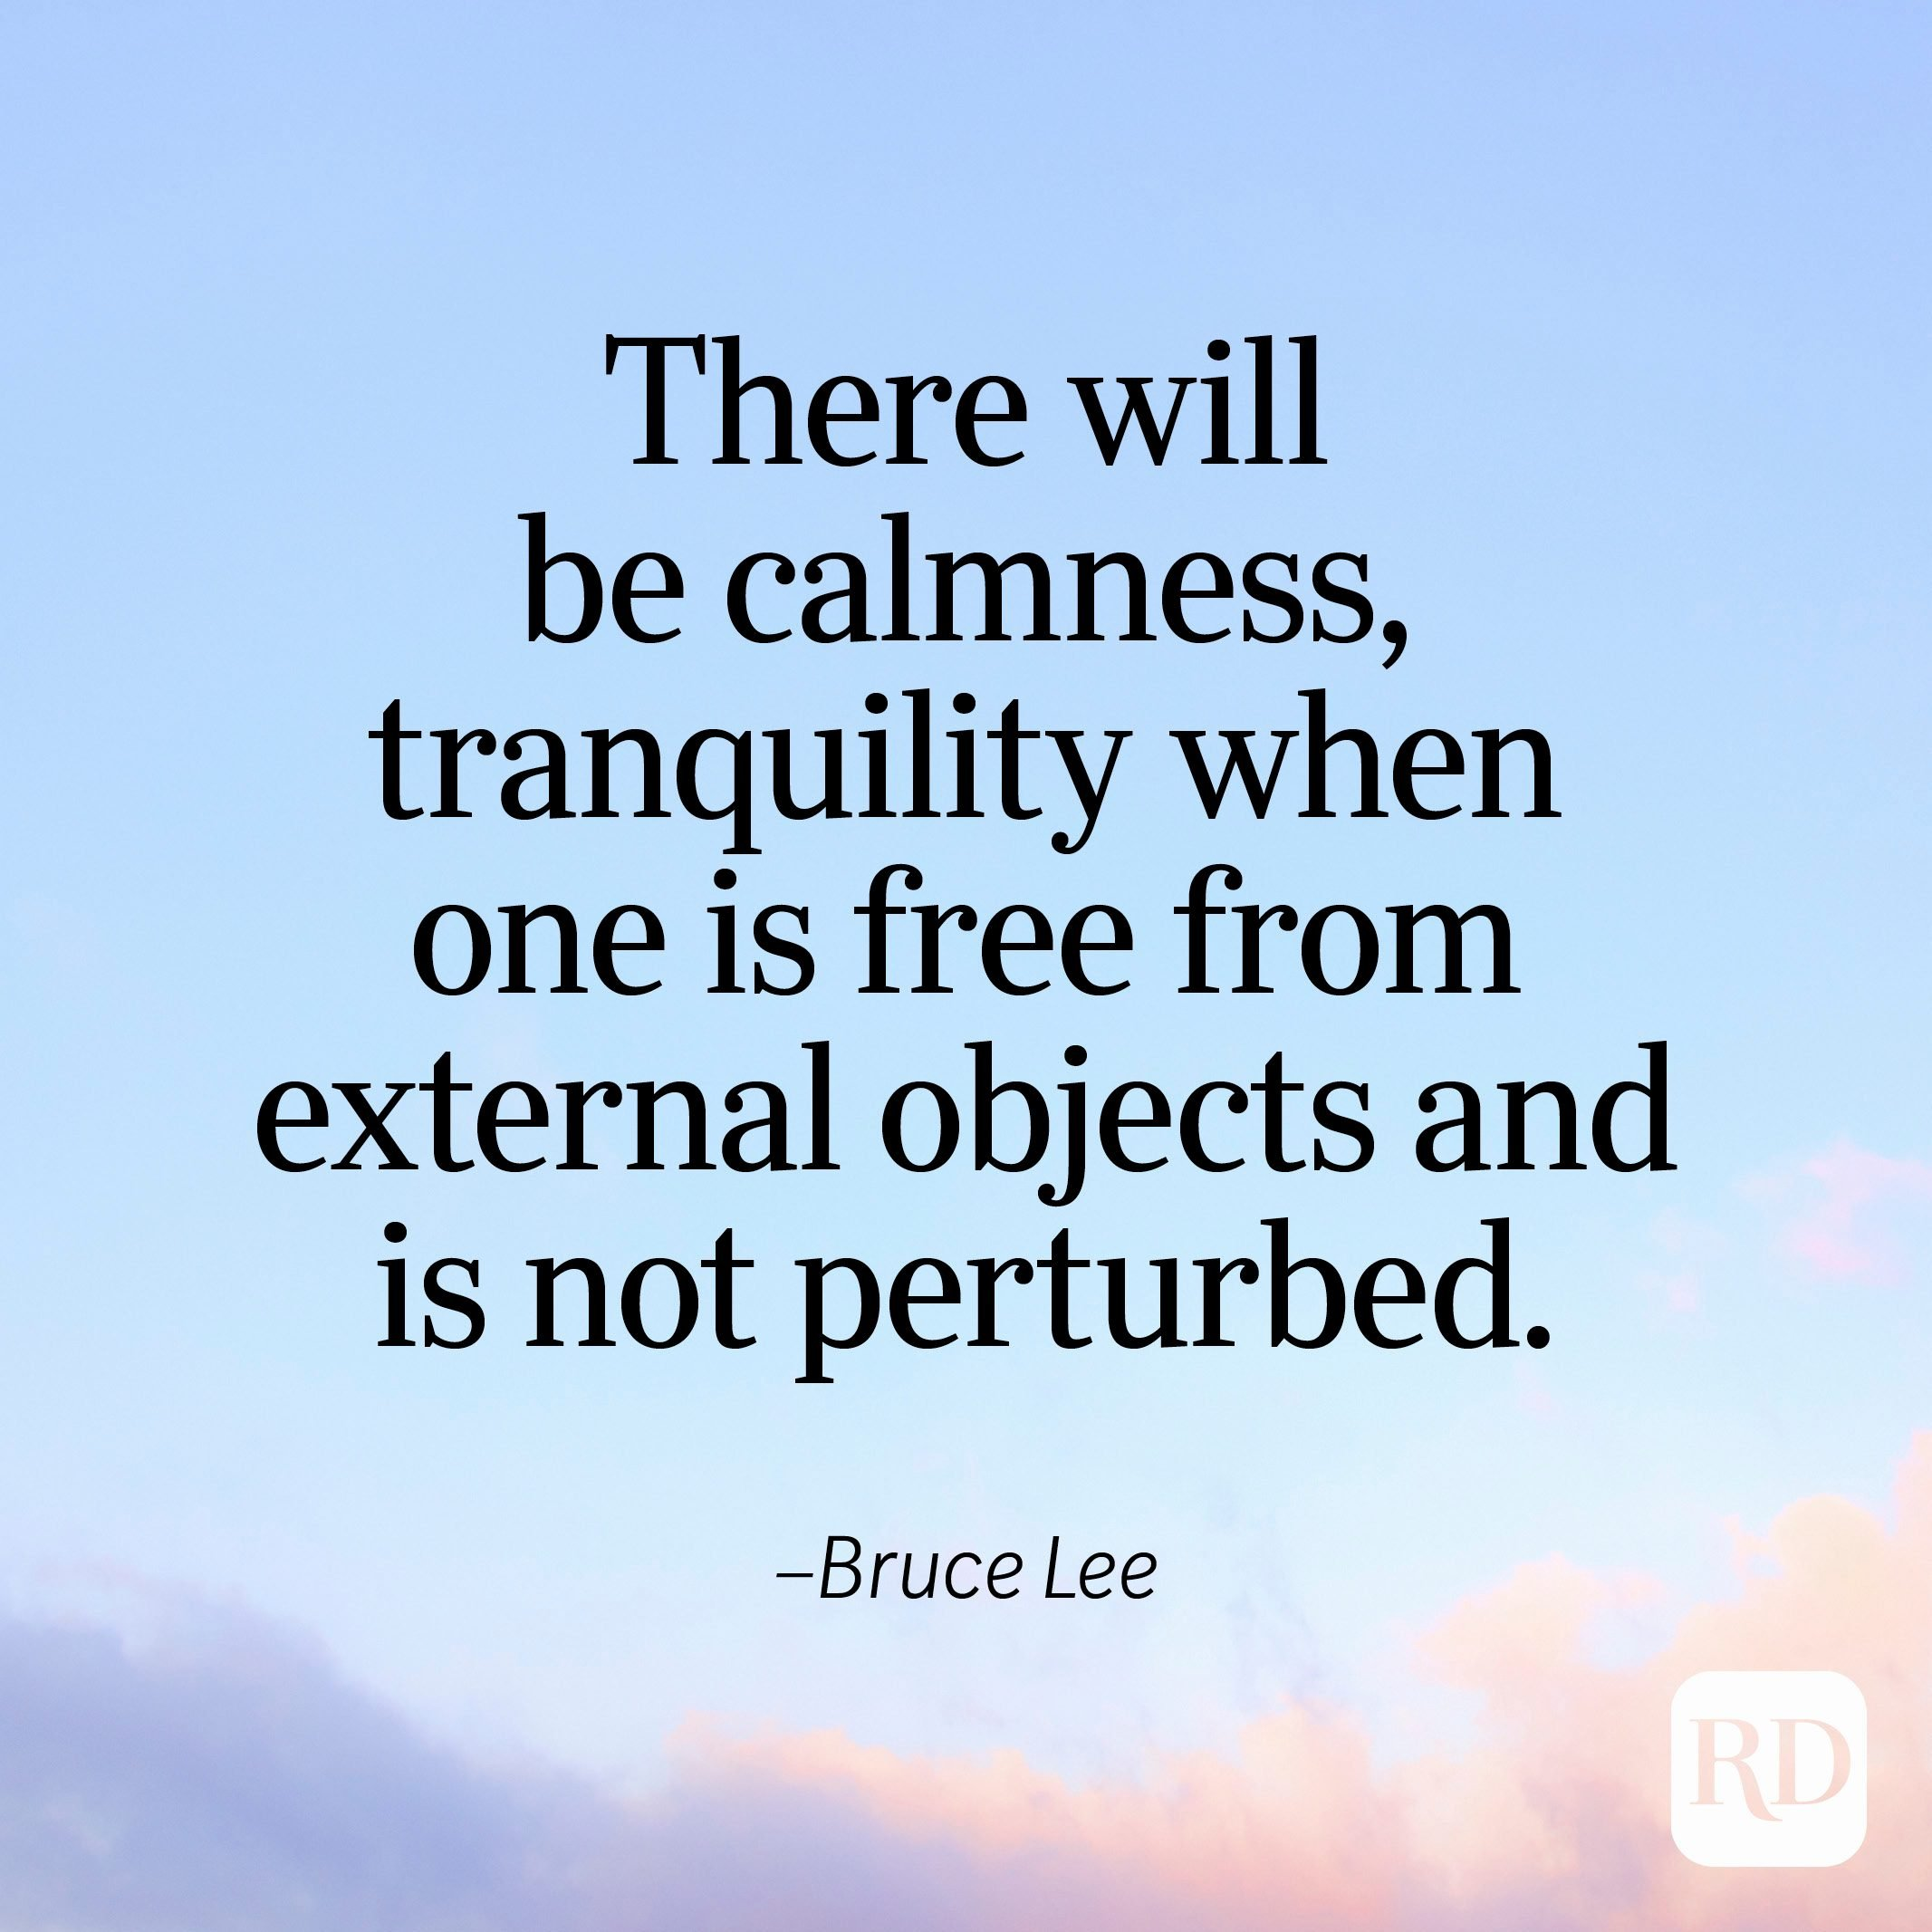 """""""There will be calmness, tranquility when one is free from external objects and is not perturbed."""" —Bruce Lee"""